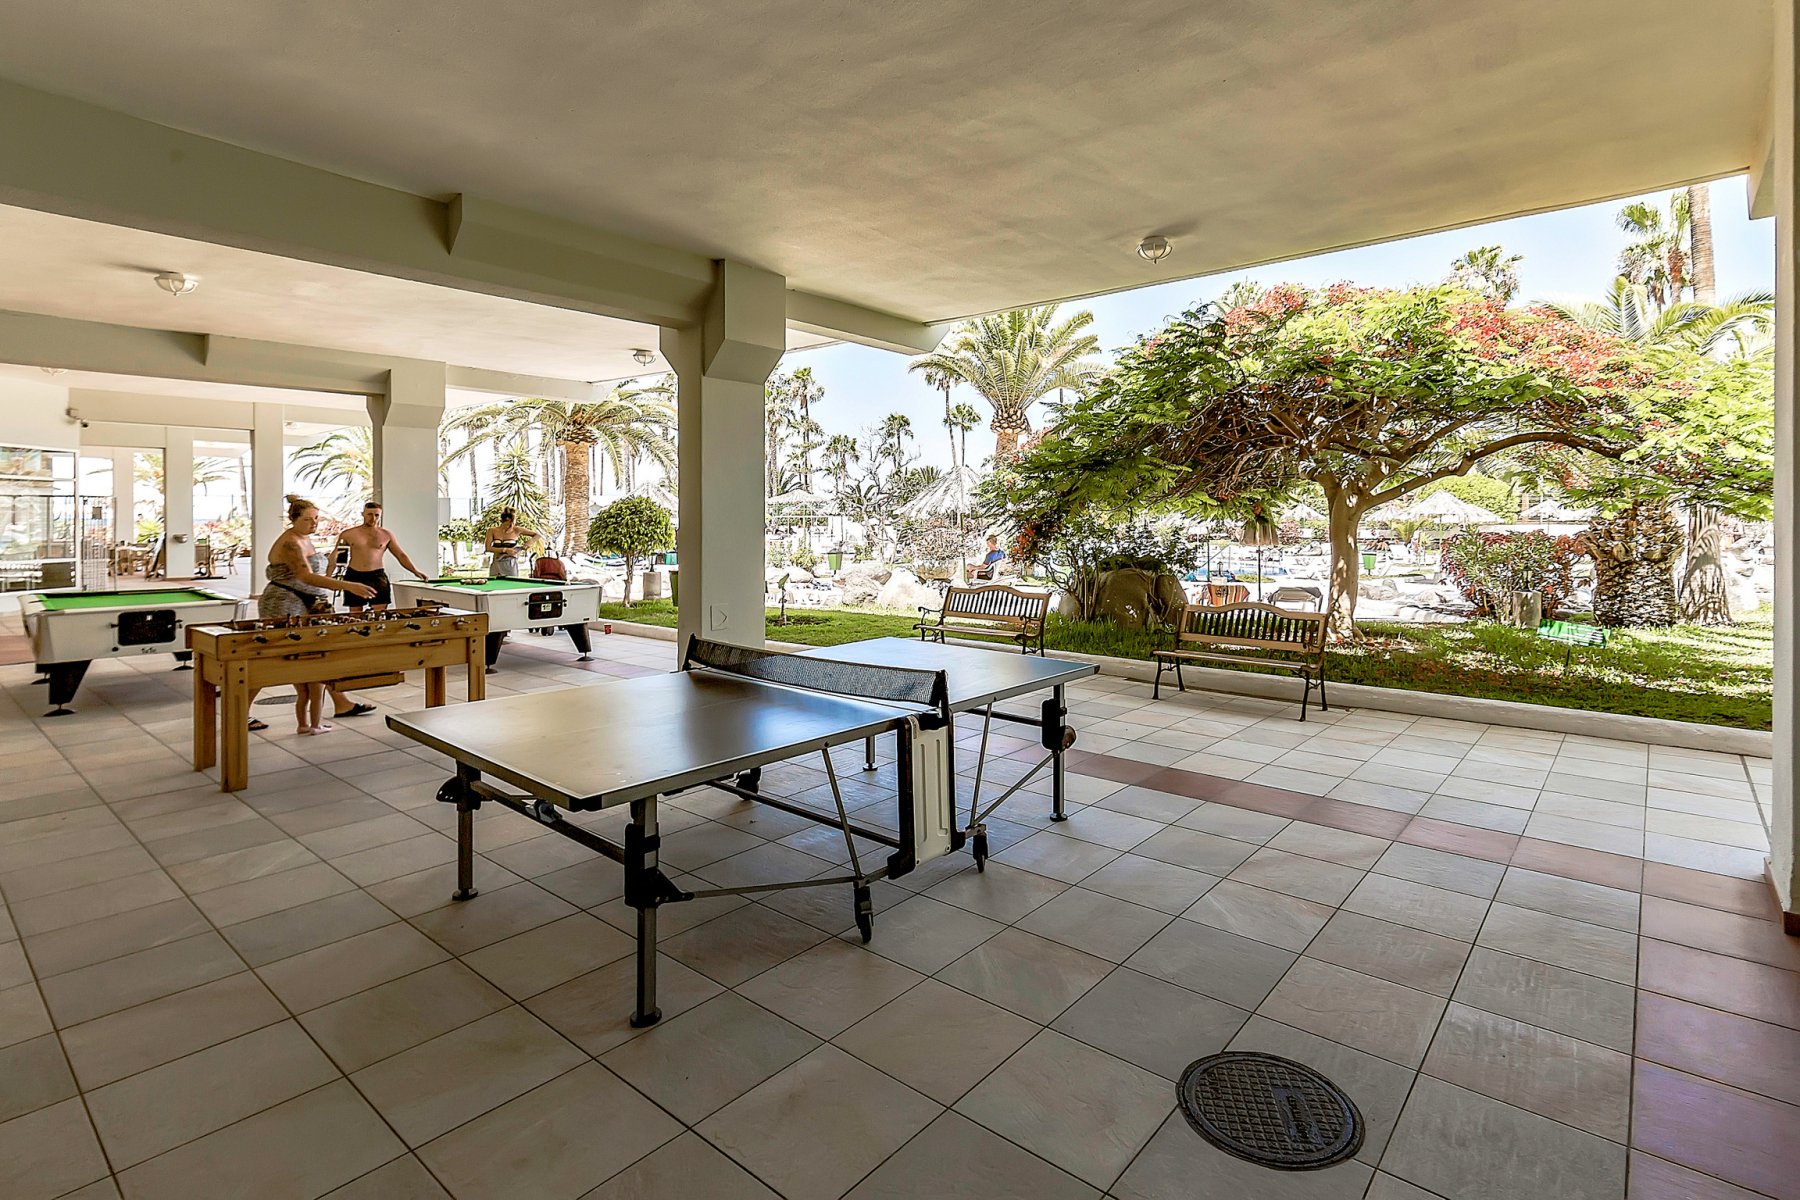 Properties for Sale in Tenerife, Canary Islands, Spain | SylkWayStar Real Estate. Lovely 1 Bedroom Apartment - Altamira. Image-25842